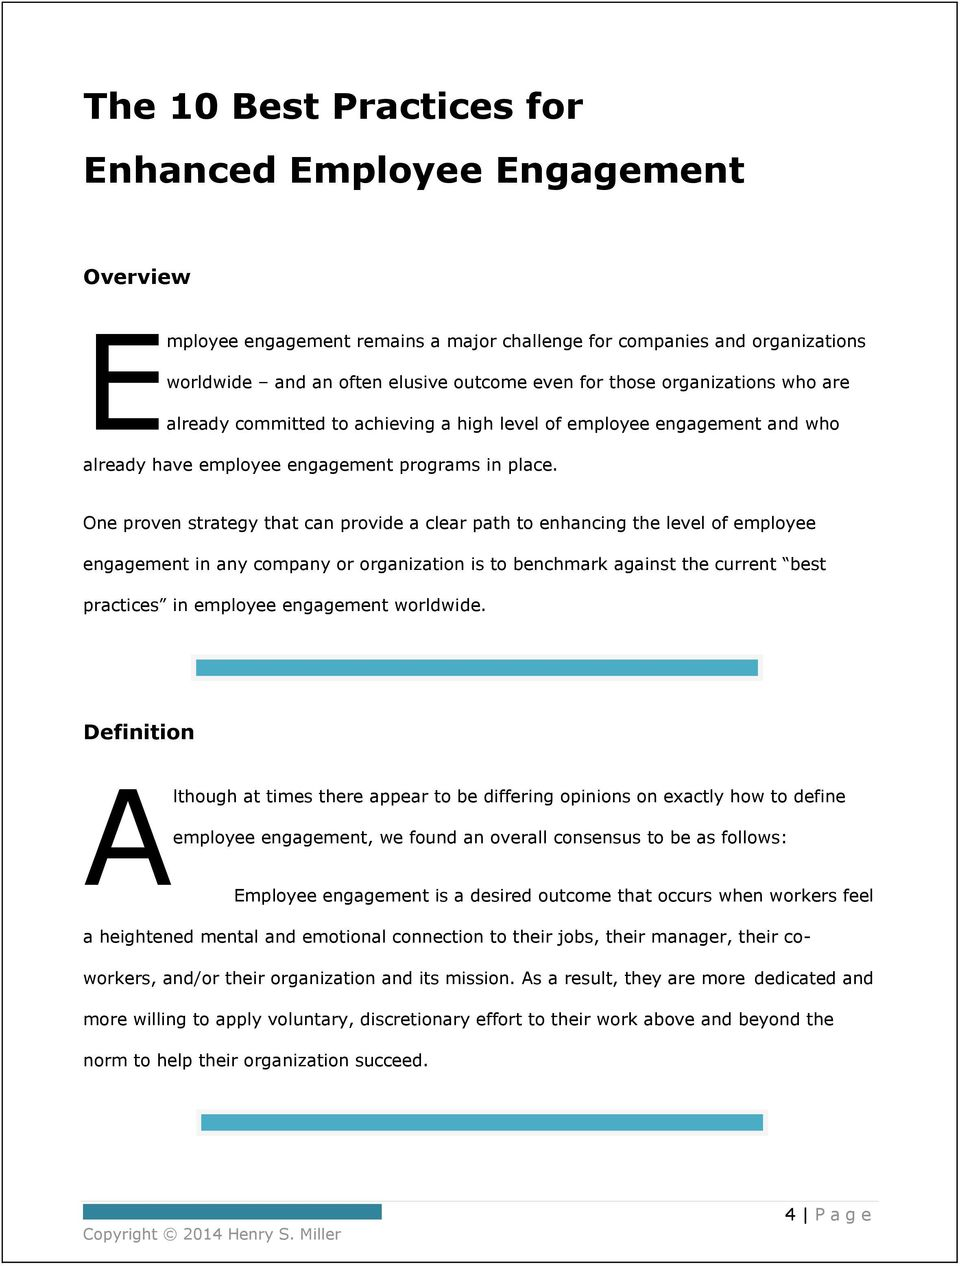 The 10 Best Practices for Enhanced Employee Engagement - PDF